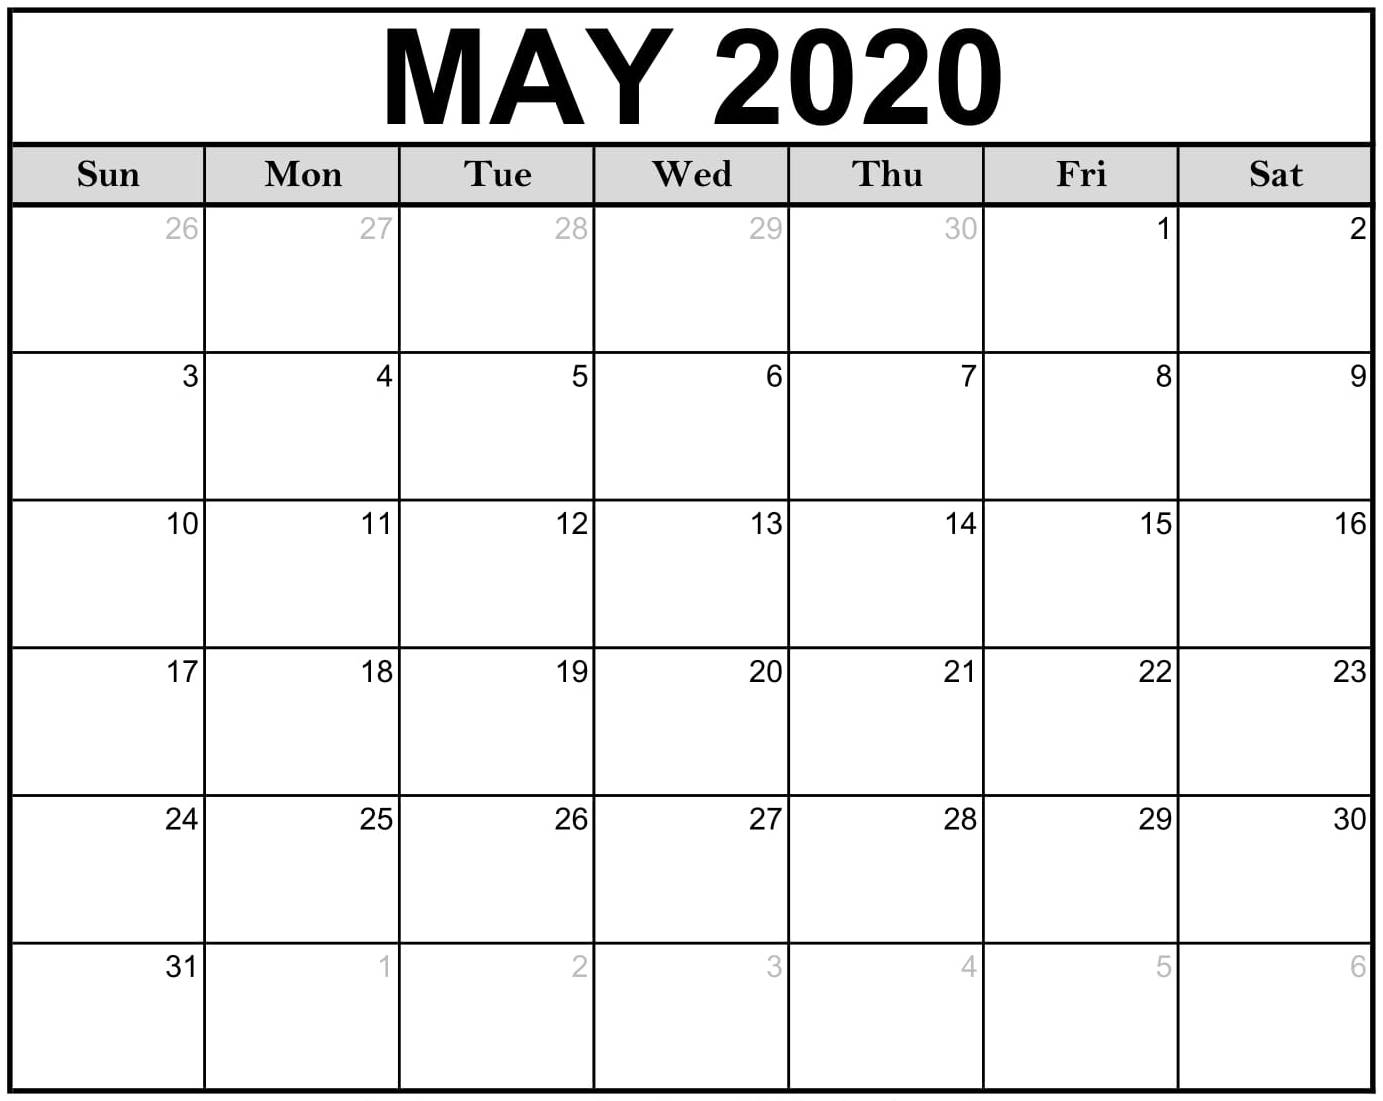 May 2020 Calendar Nz (New Zealand) With Holidays Template